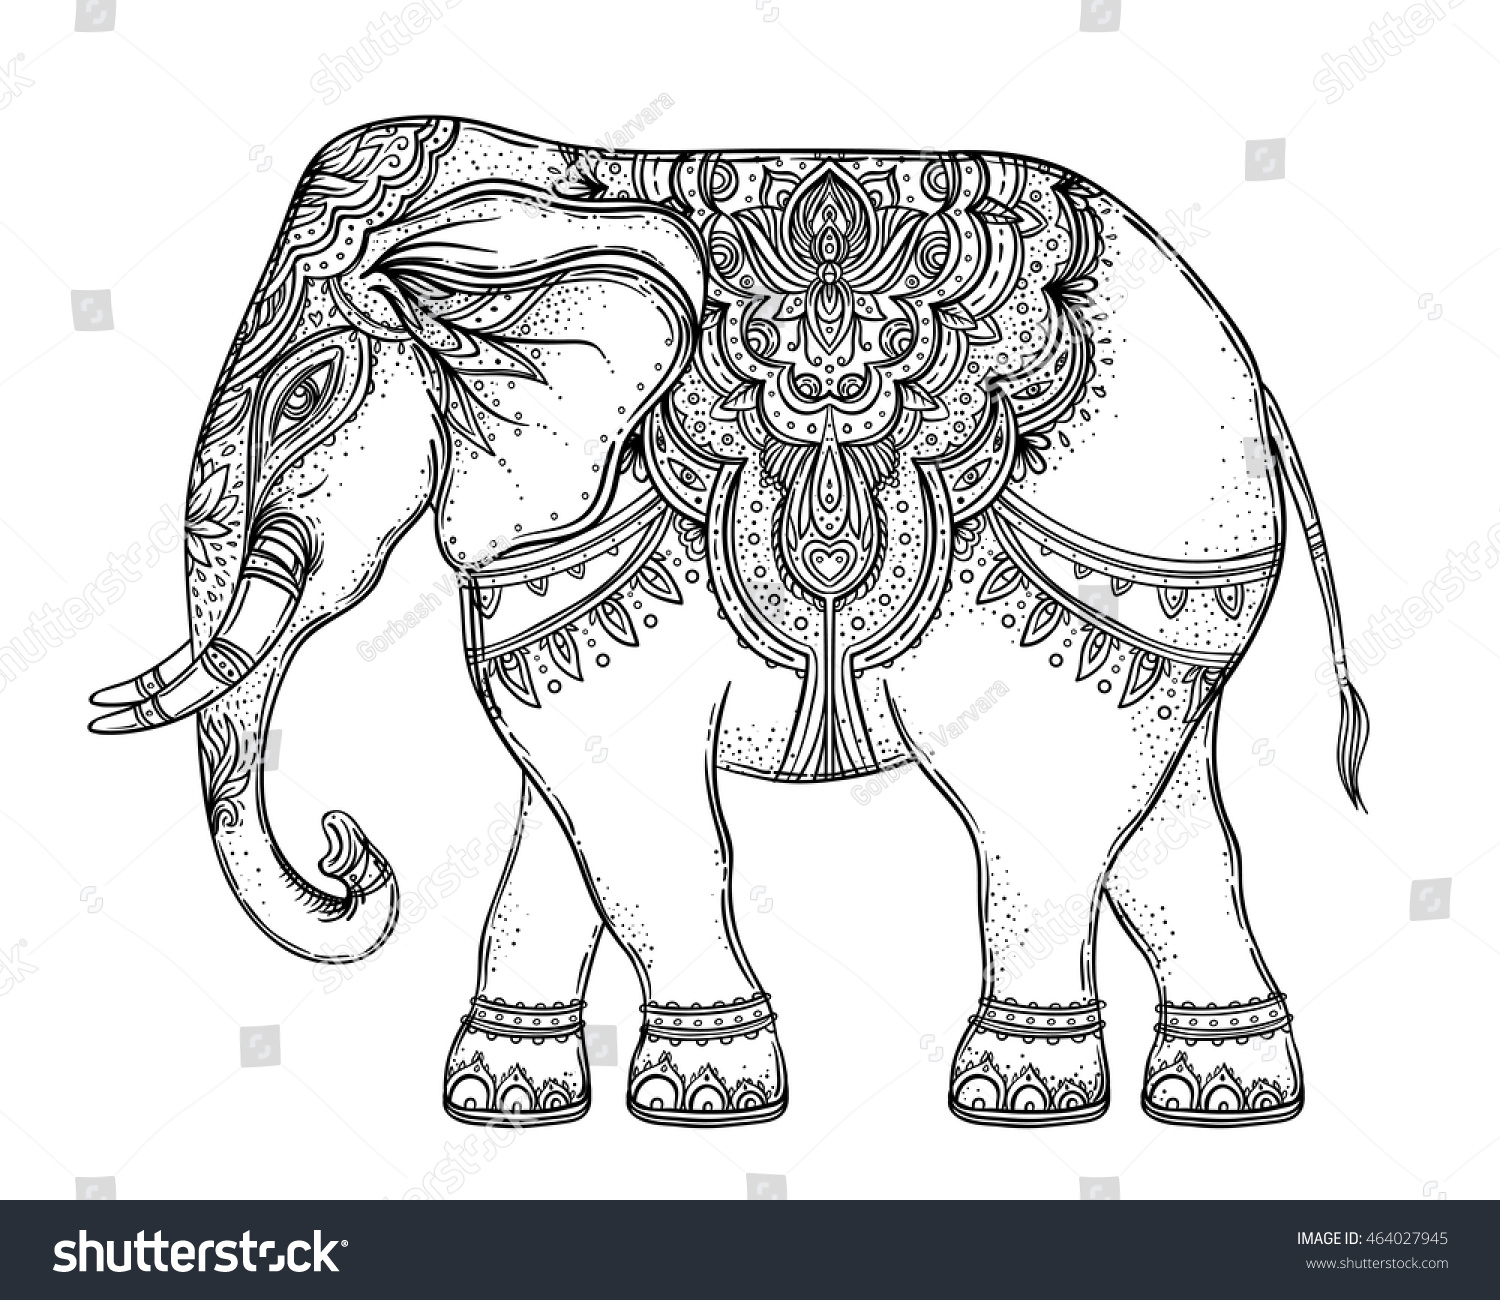 Beautiful Handdrawn Tribal Style Elephant Coloring Stock Vector 464027945